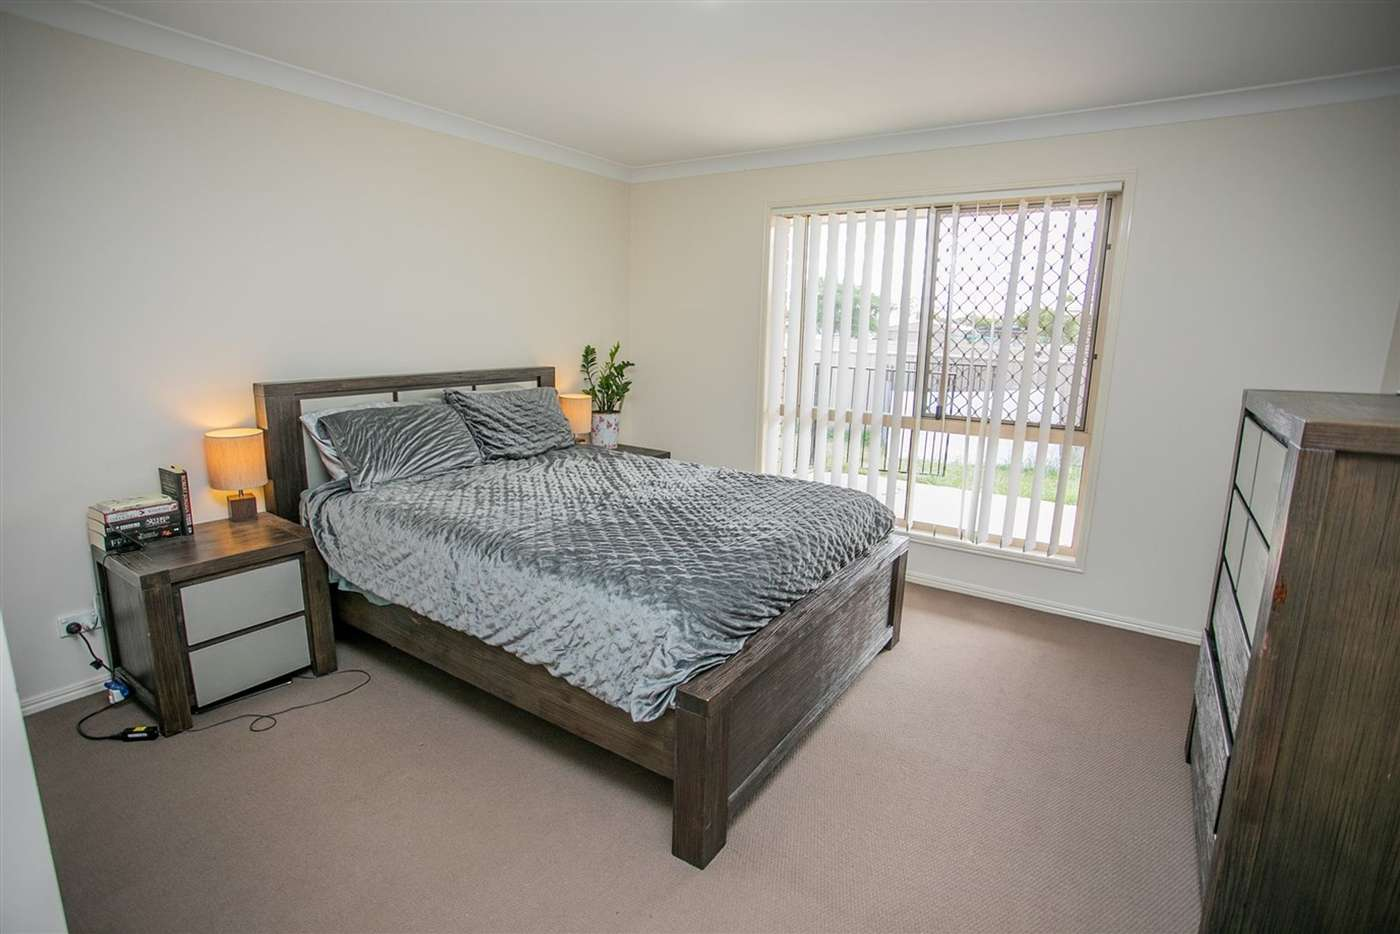 Seventh view of Homely house listing, 18 Sheridan Street, Chinchilla QLD 4413